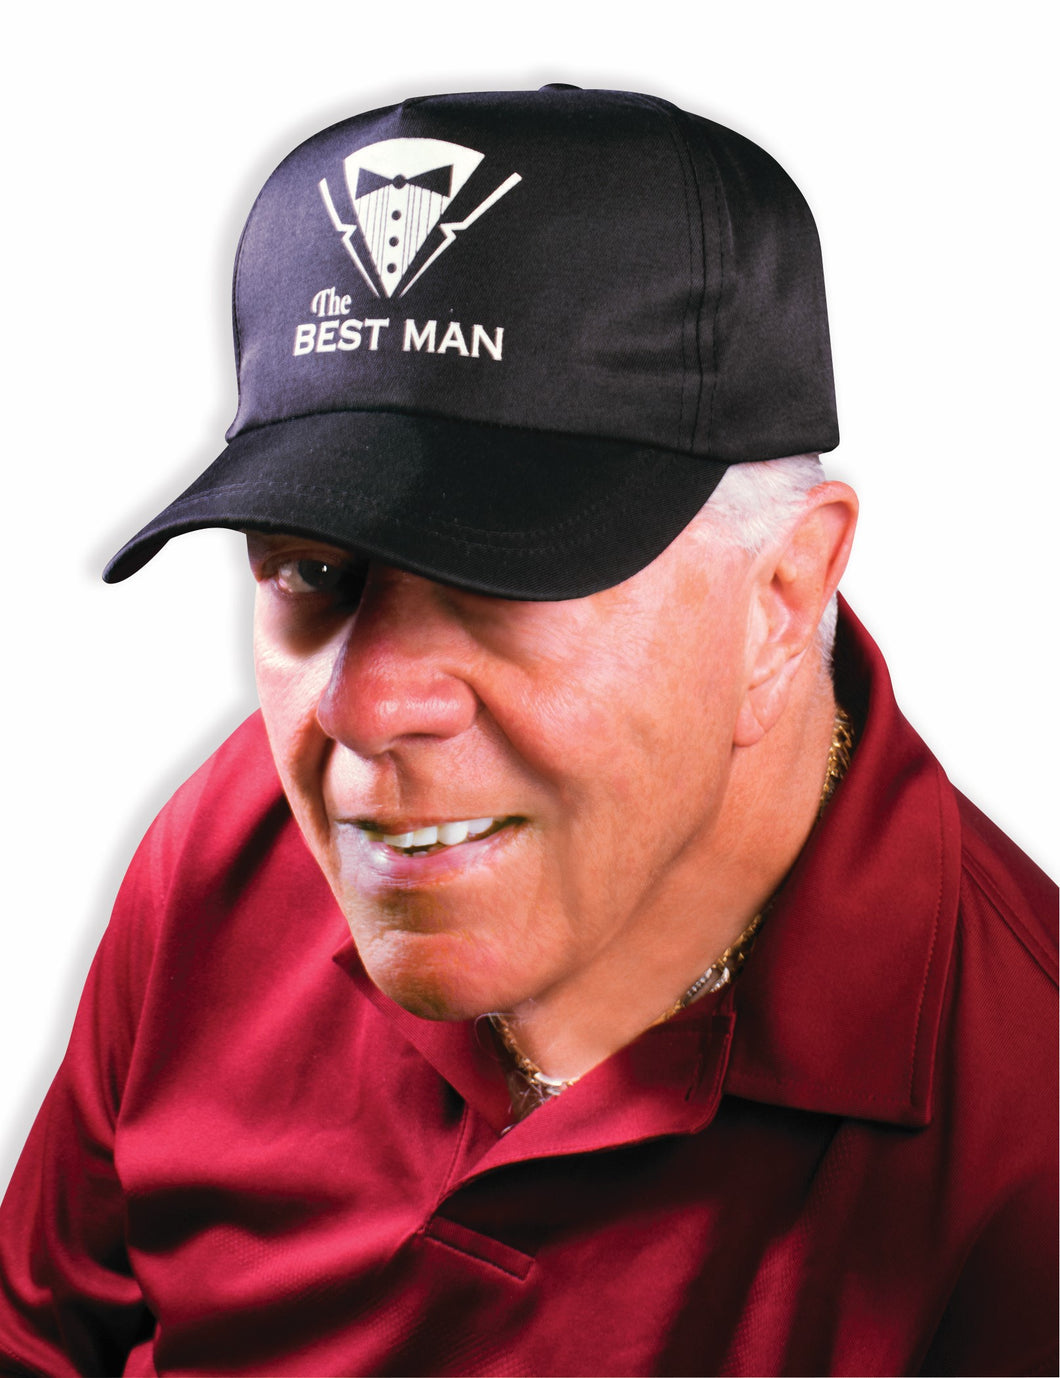 Bachelor Hat - Best Man - Red Top Box